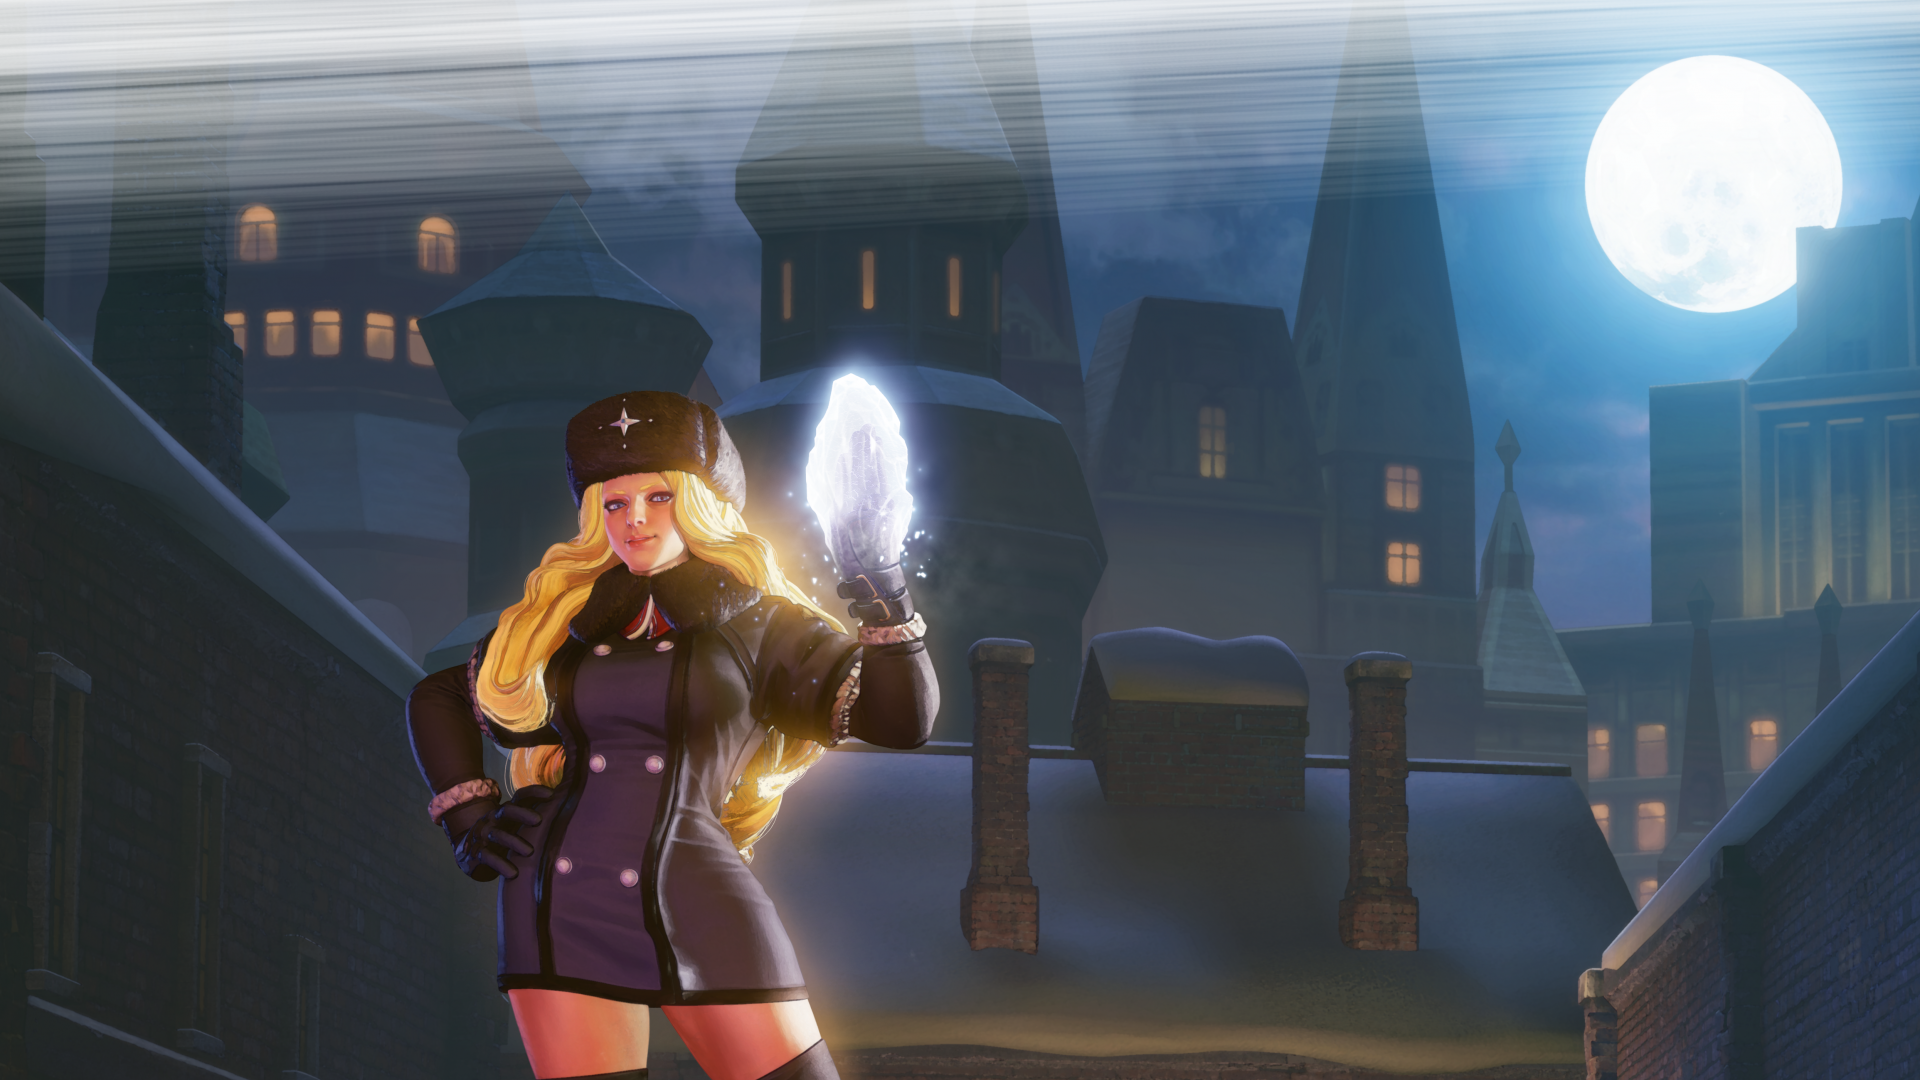 Kolin, Joins Street Fighter 5 as Next Season 2 Character